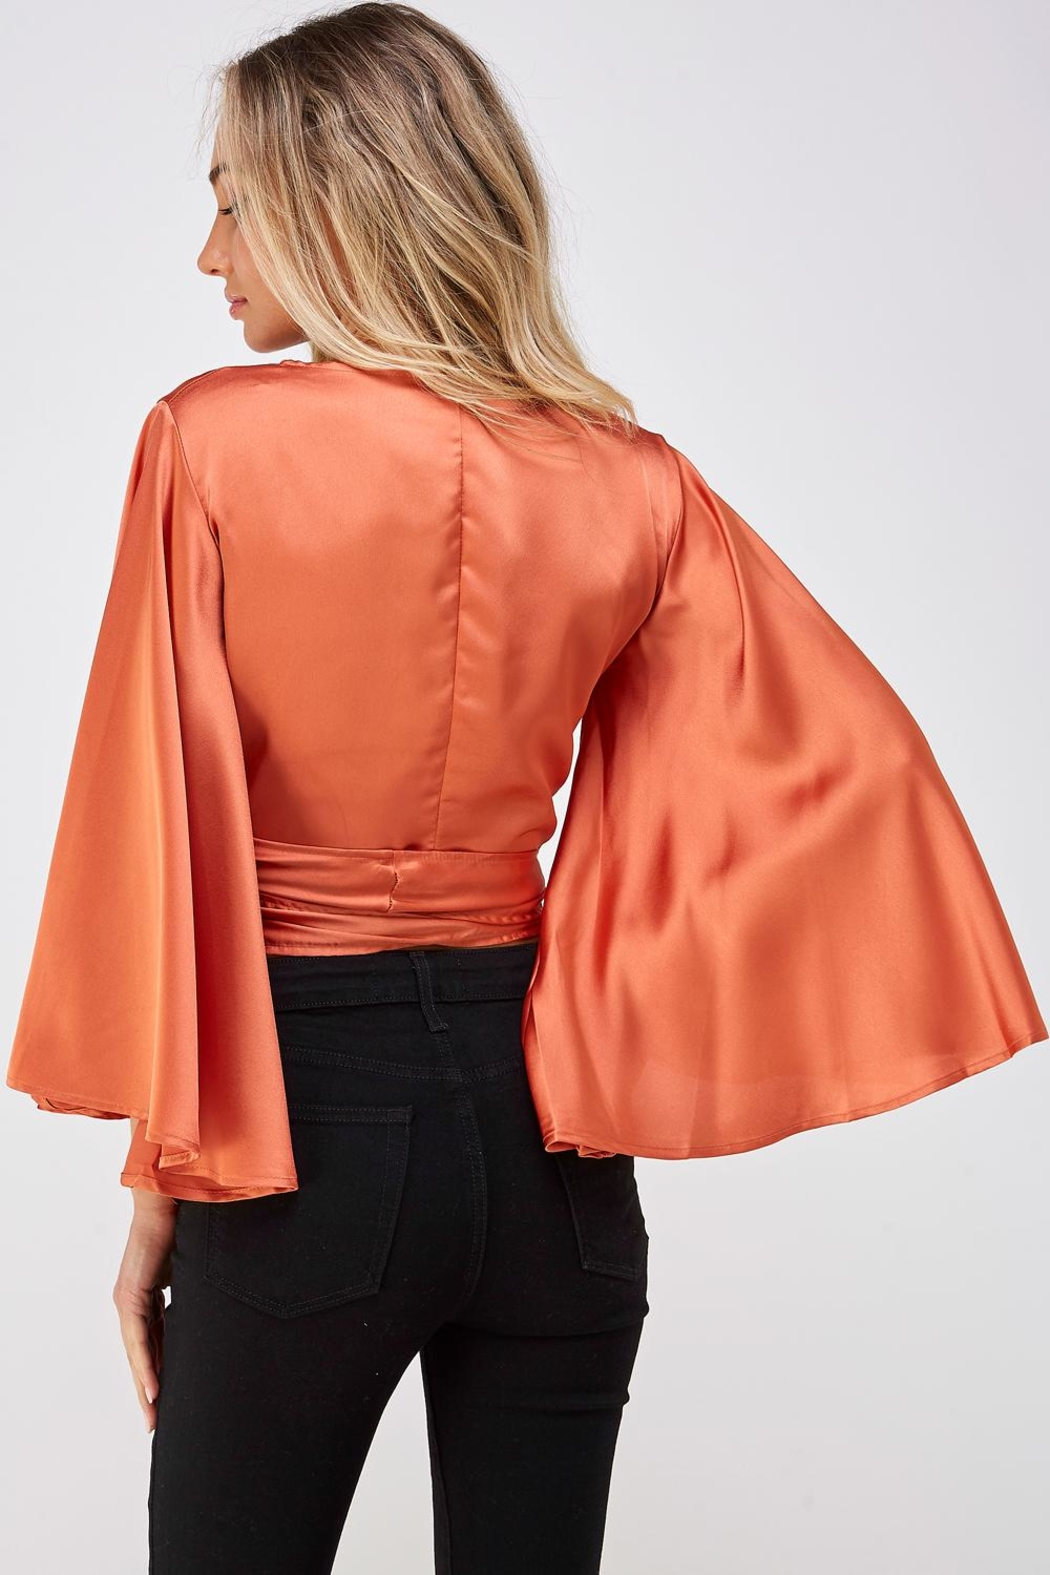 hers and mine Bell Sleeve Blouse - Back Cropped Image